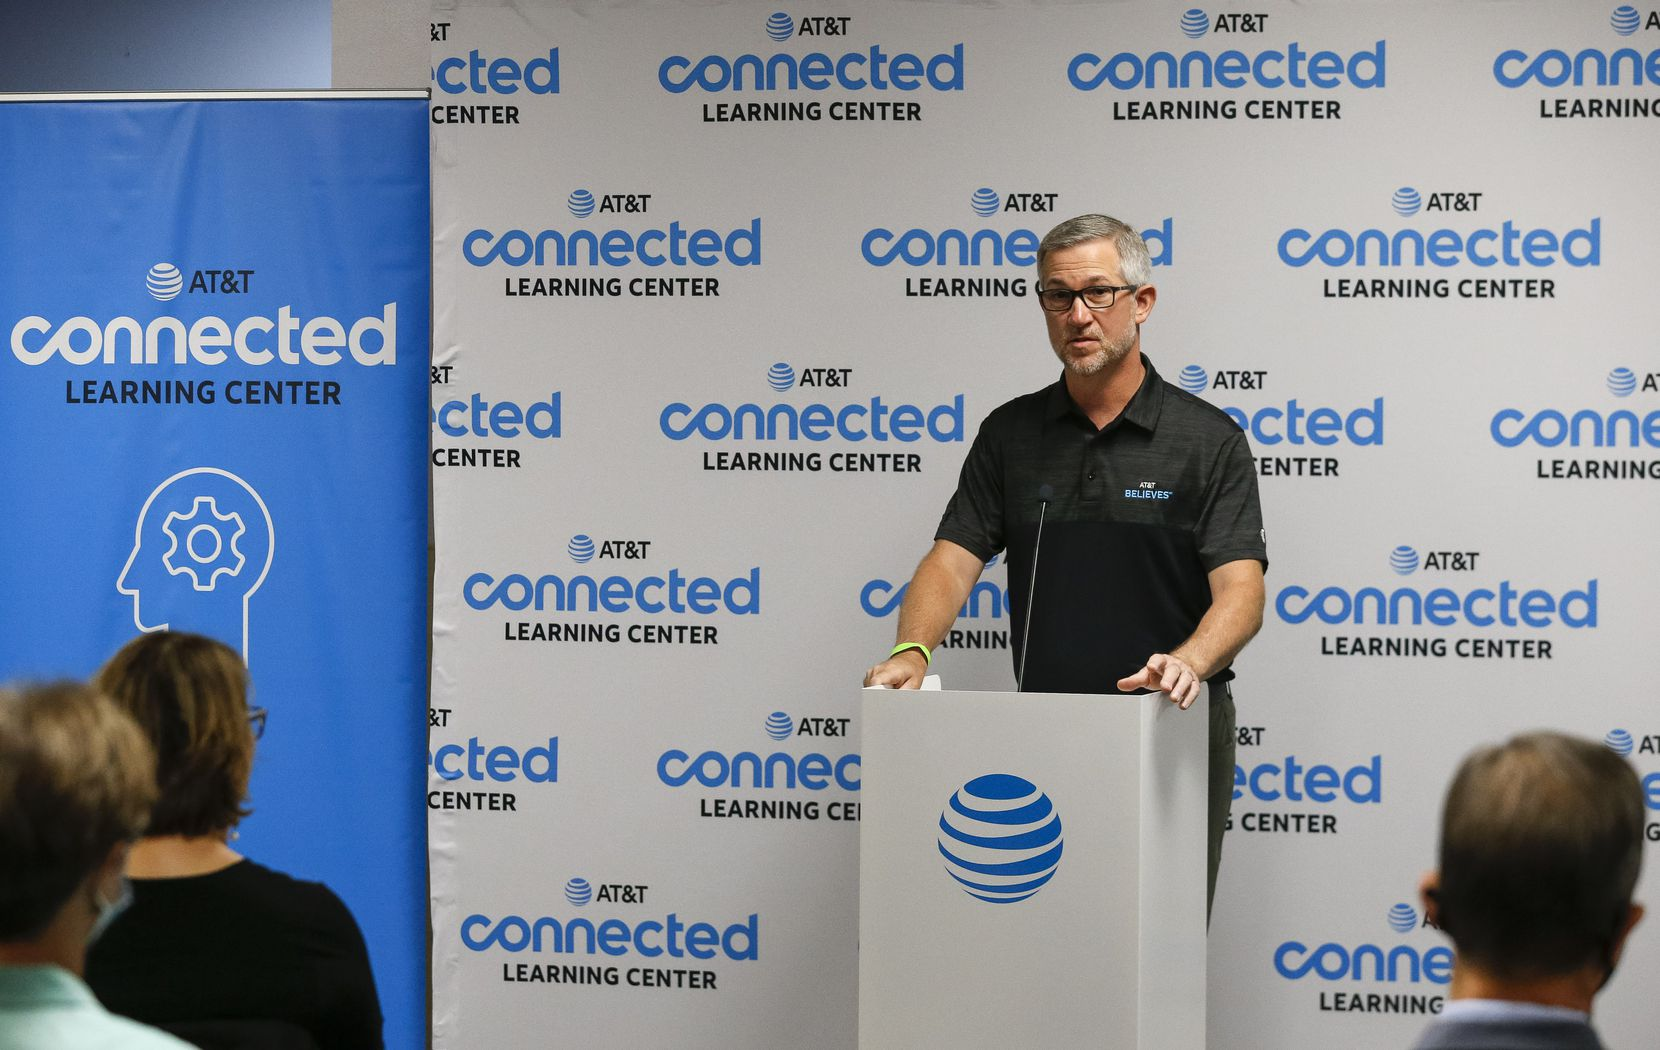 AT&T Communications CEO Jeff McElfresh spoke during the opening of the Connected Learning Center at Family Gateway.